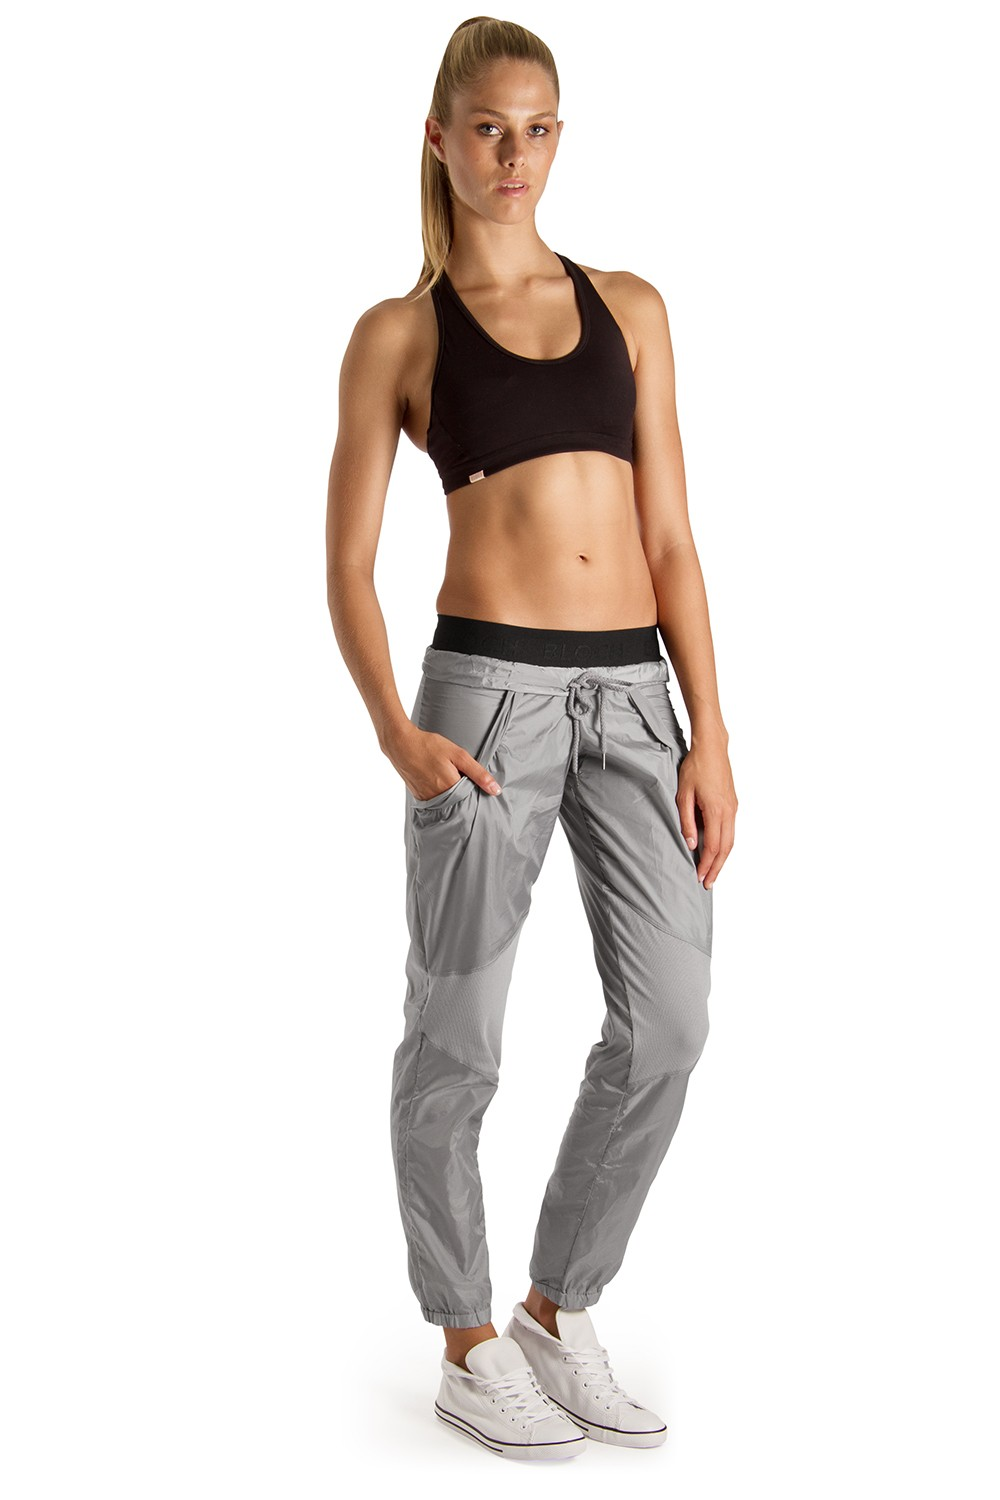 Rib Knee Panel Pant Women's Dance Pants